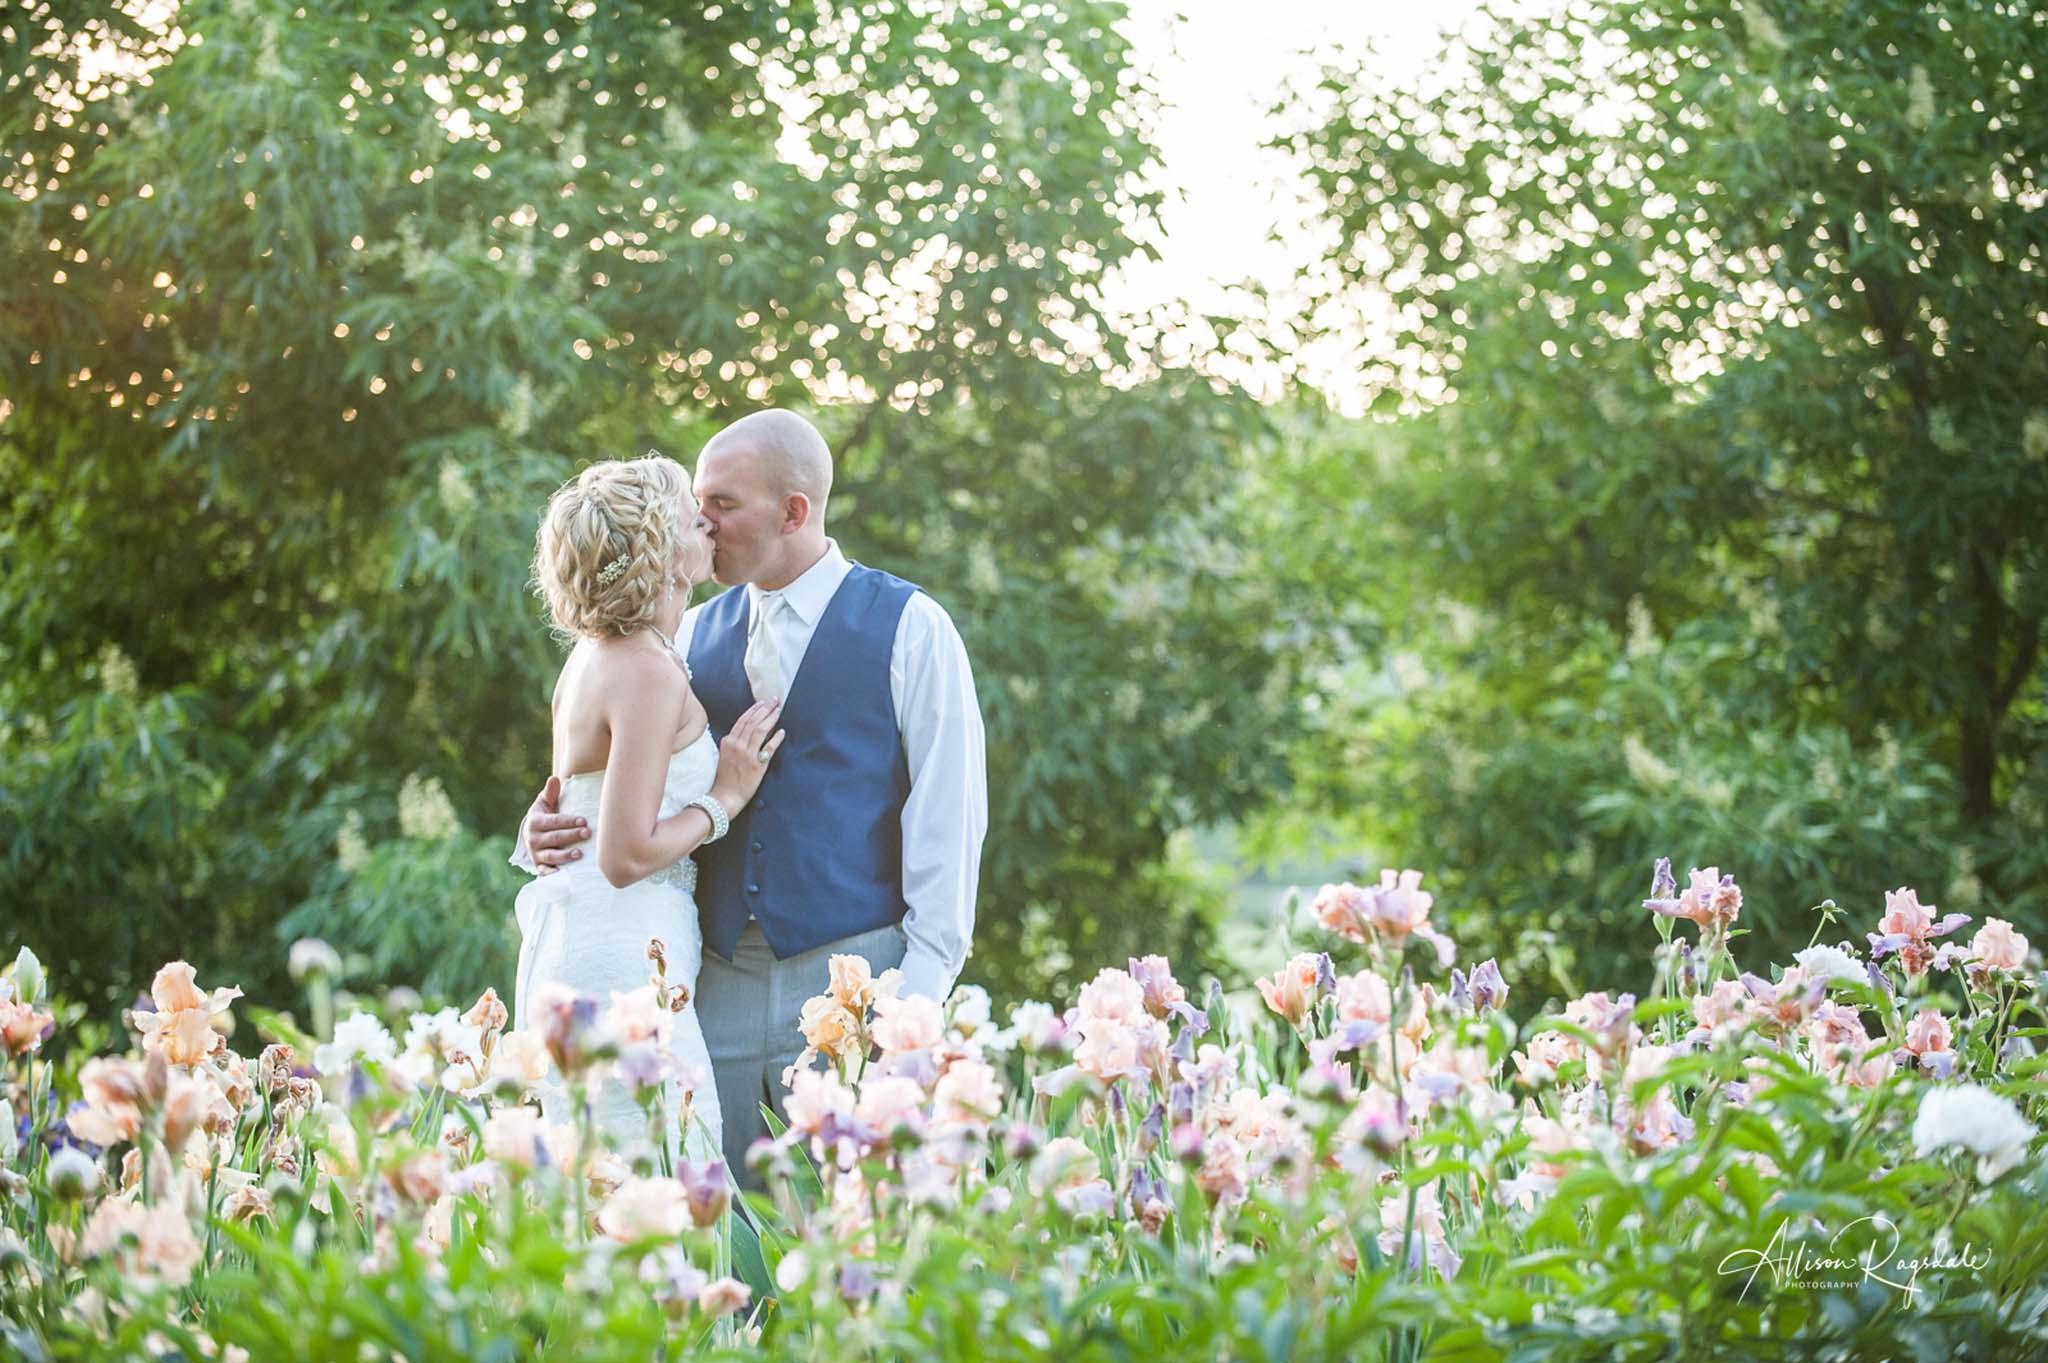 newlyweds embracing in a field of flowers